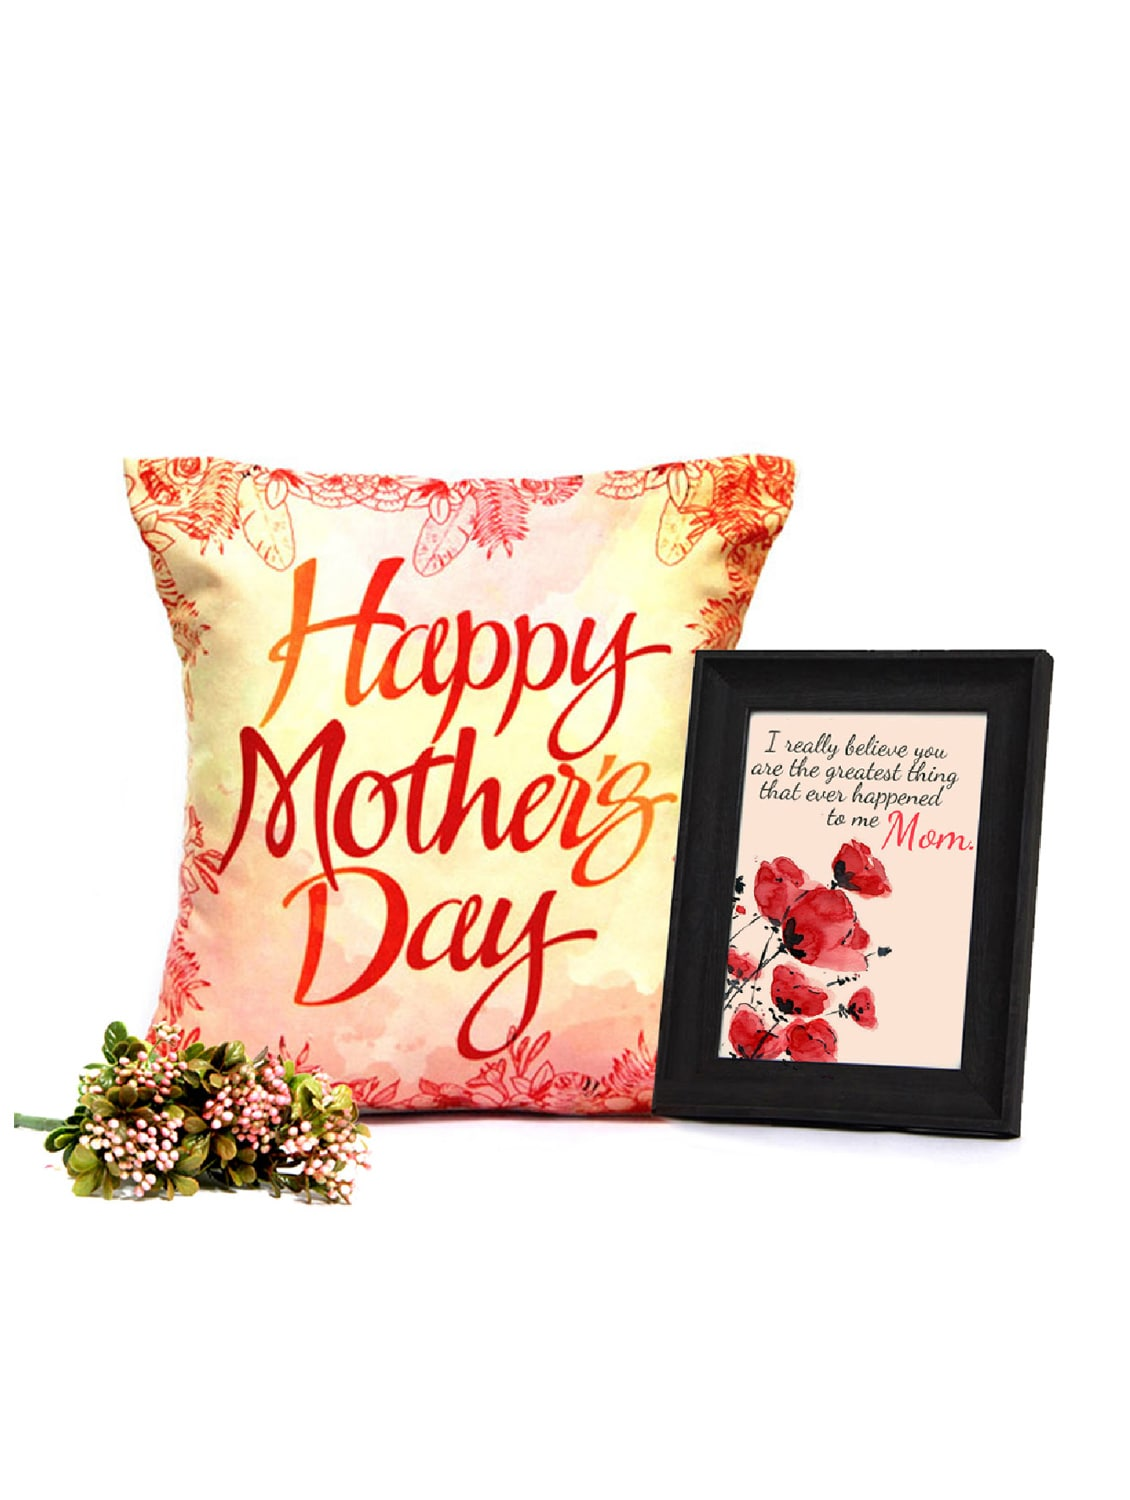 Mothers Day Cushion With Photo Frame - GIFTS111083 - By